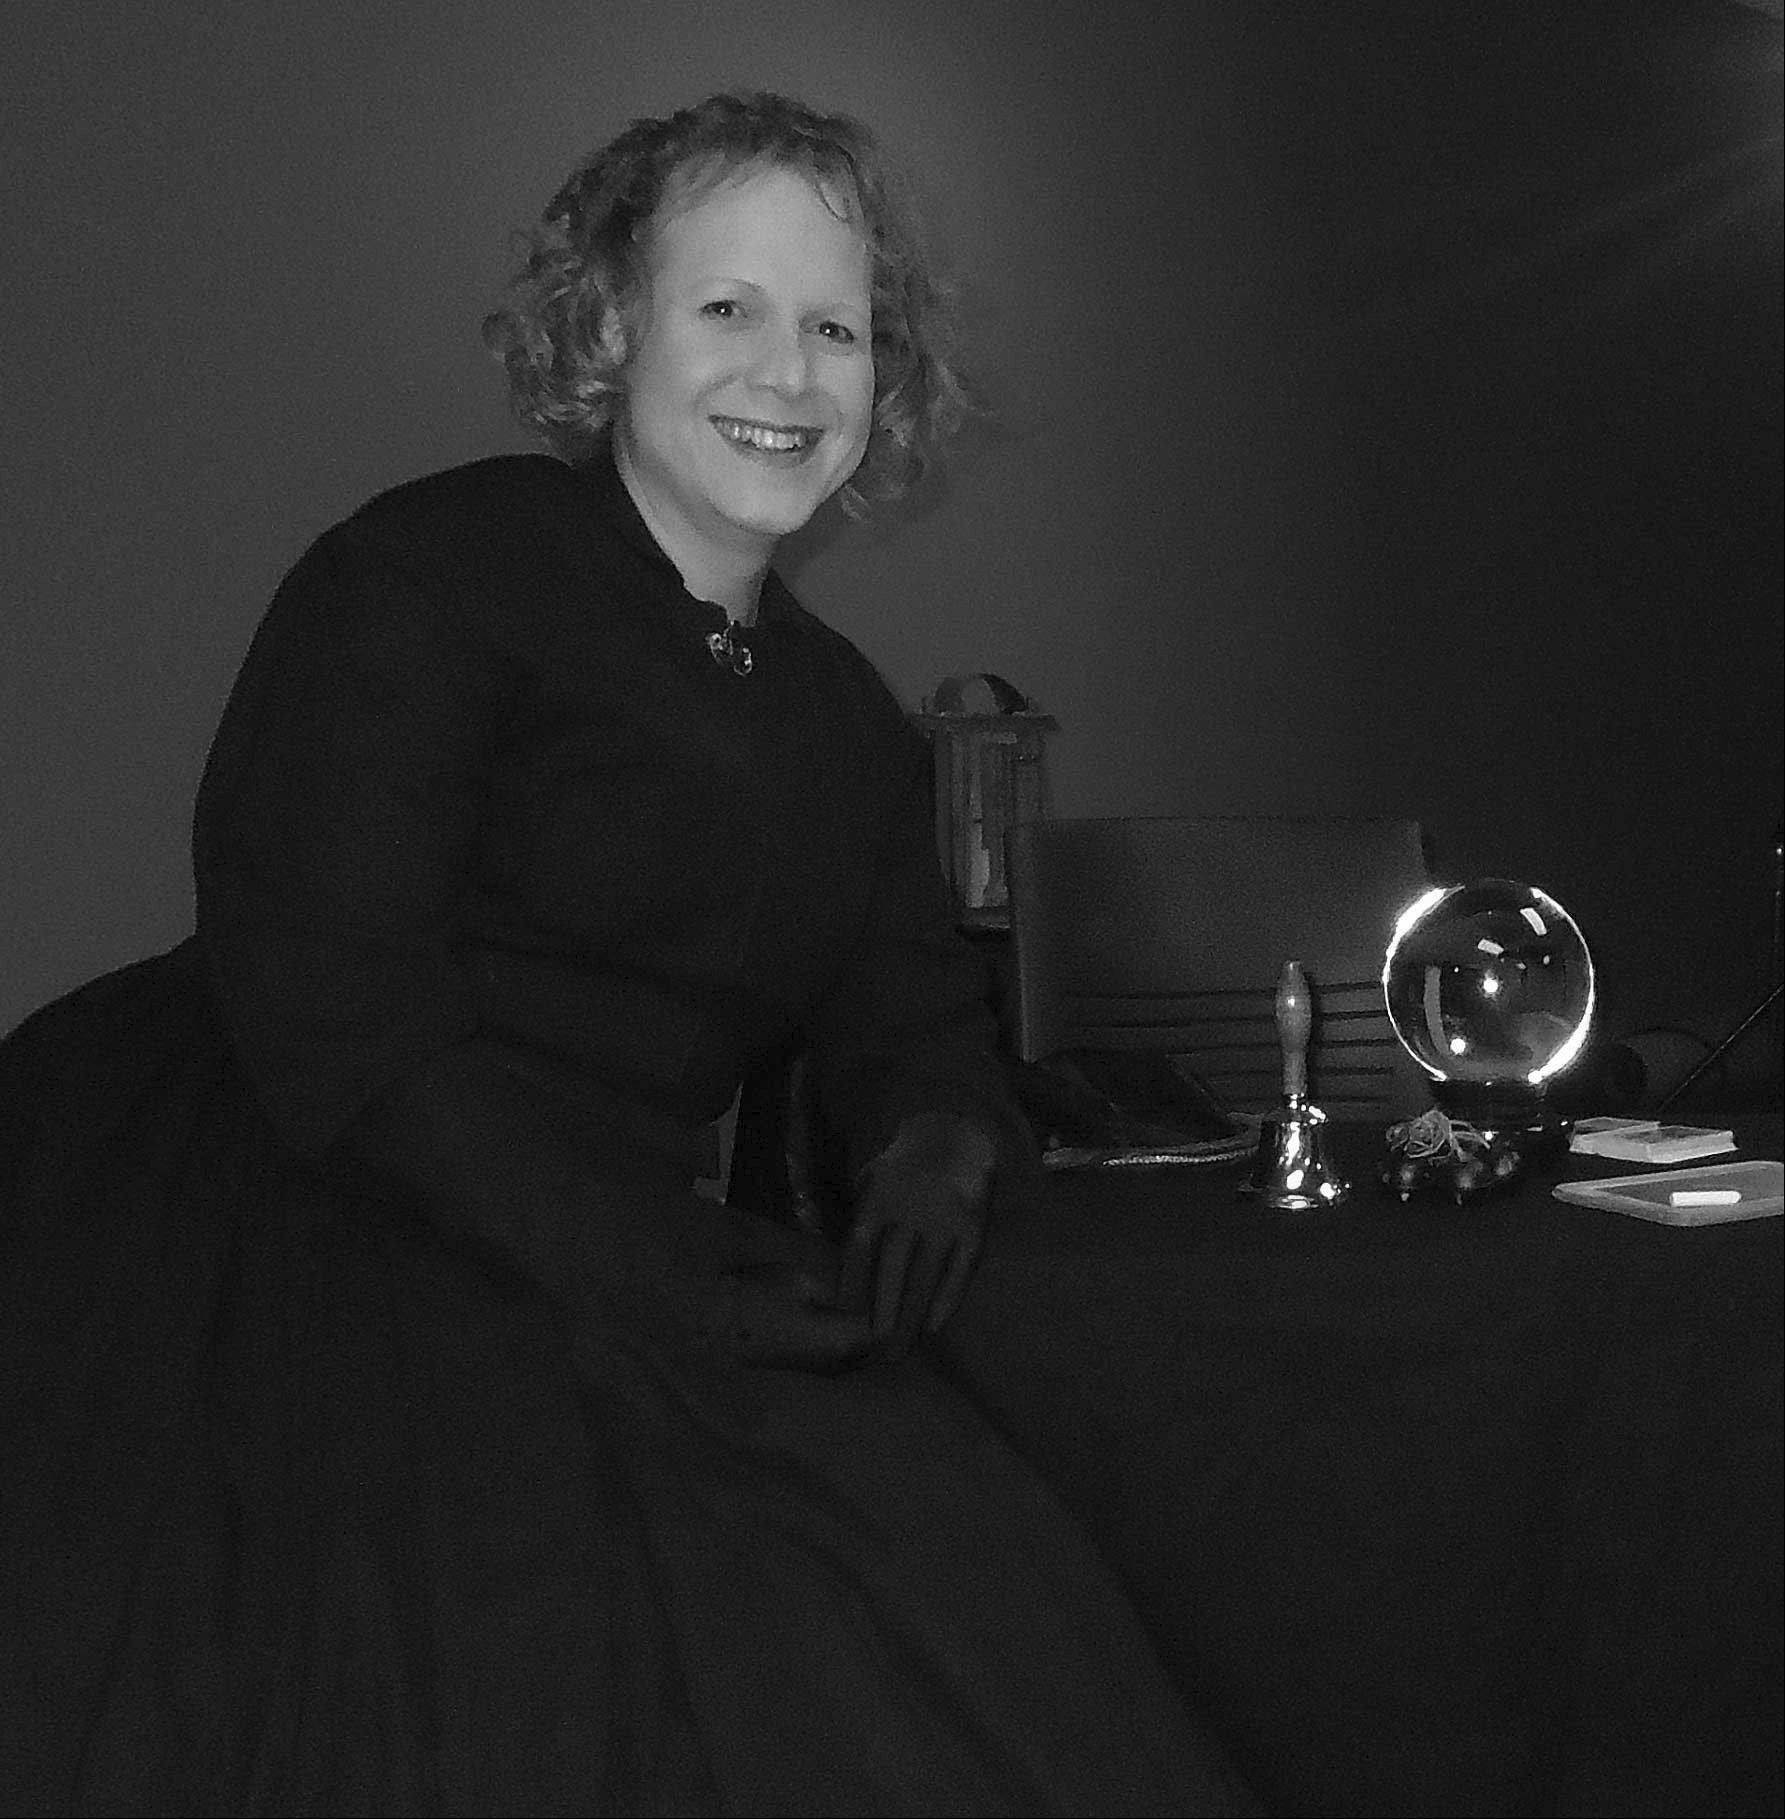 Rebecca Tullock portrays Maggie Fox, one of the founders of American Spiritualism, on Oct. 21 at Naper Settlement.